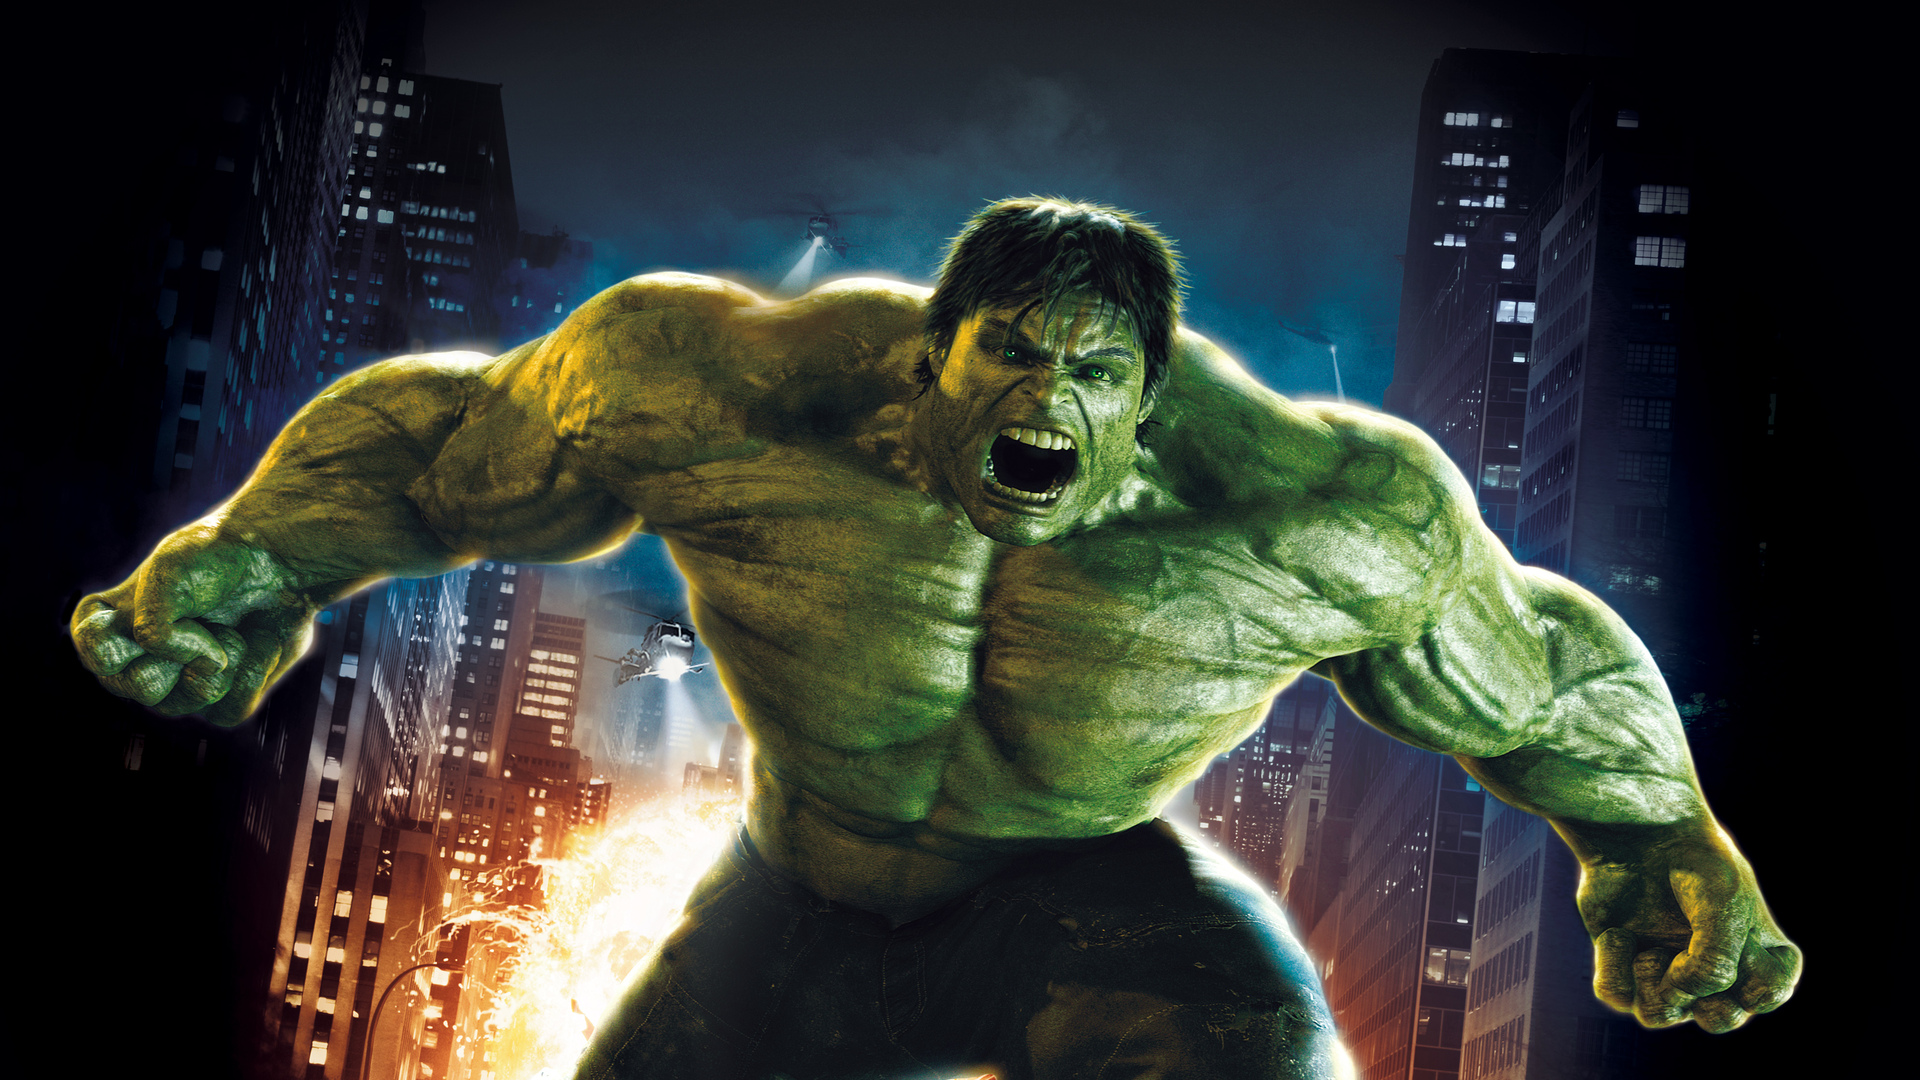 Spoiled Rotten 154: Revisiting The Incredible Hulk